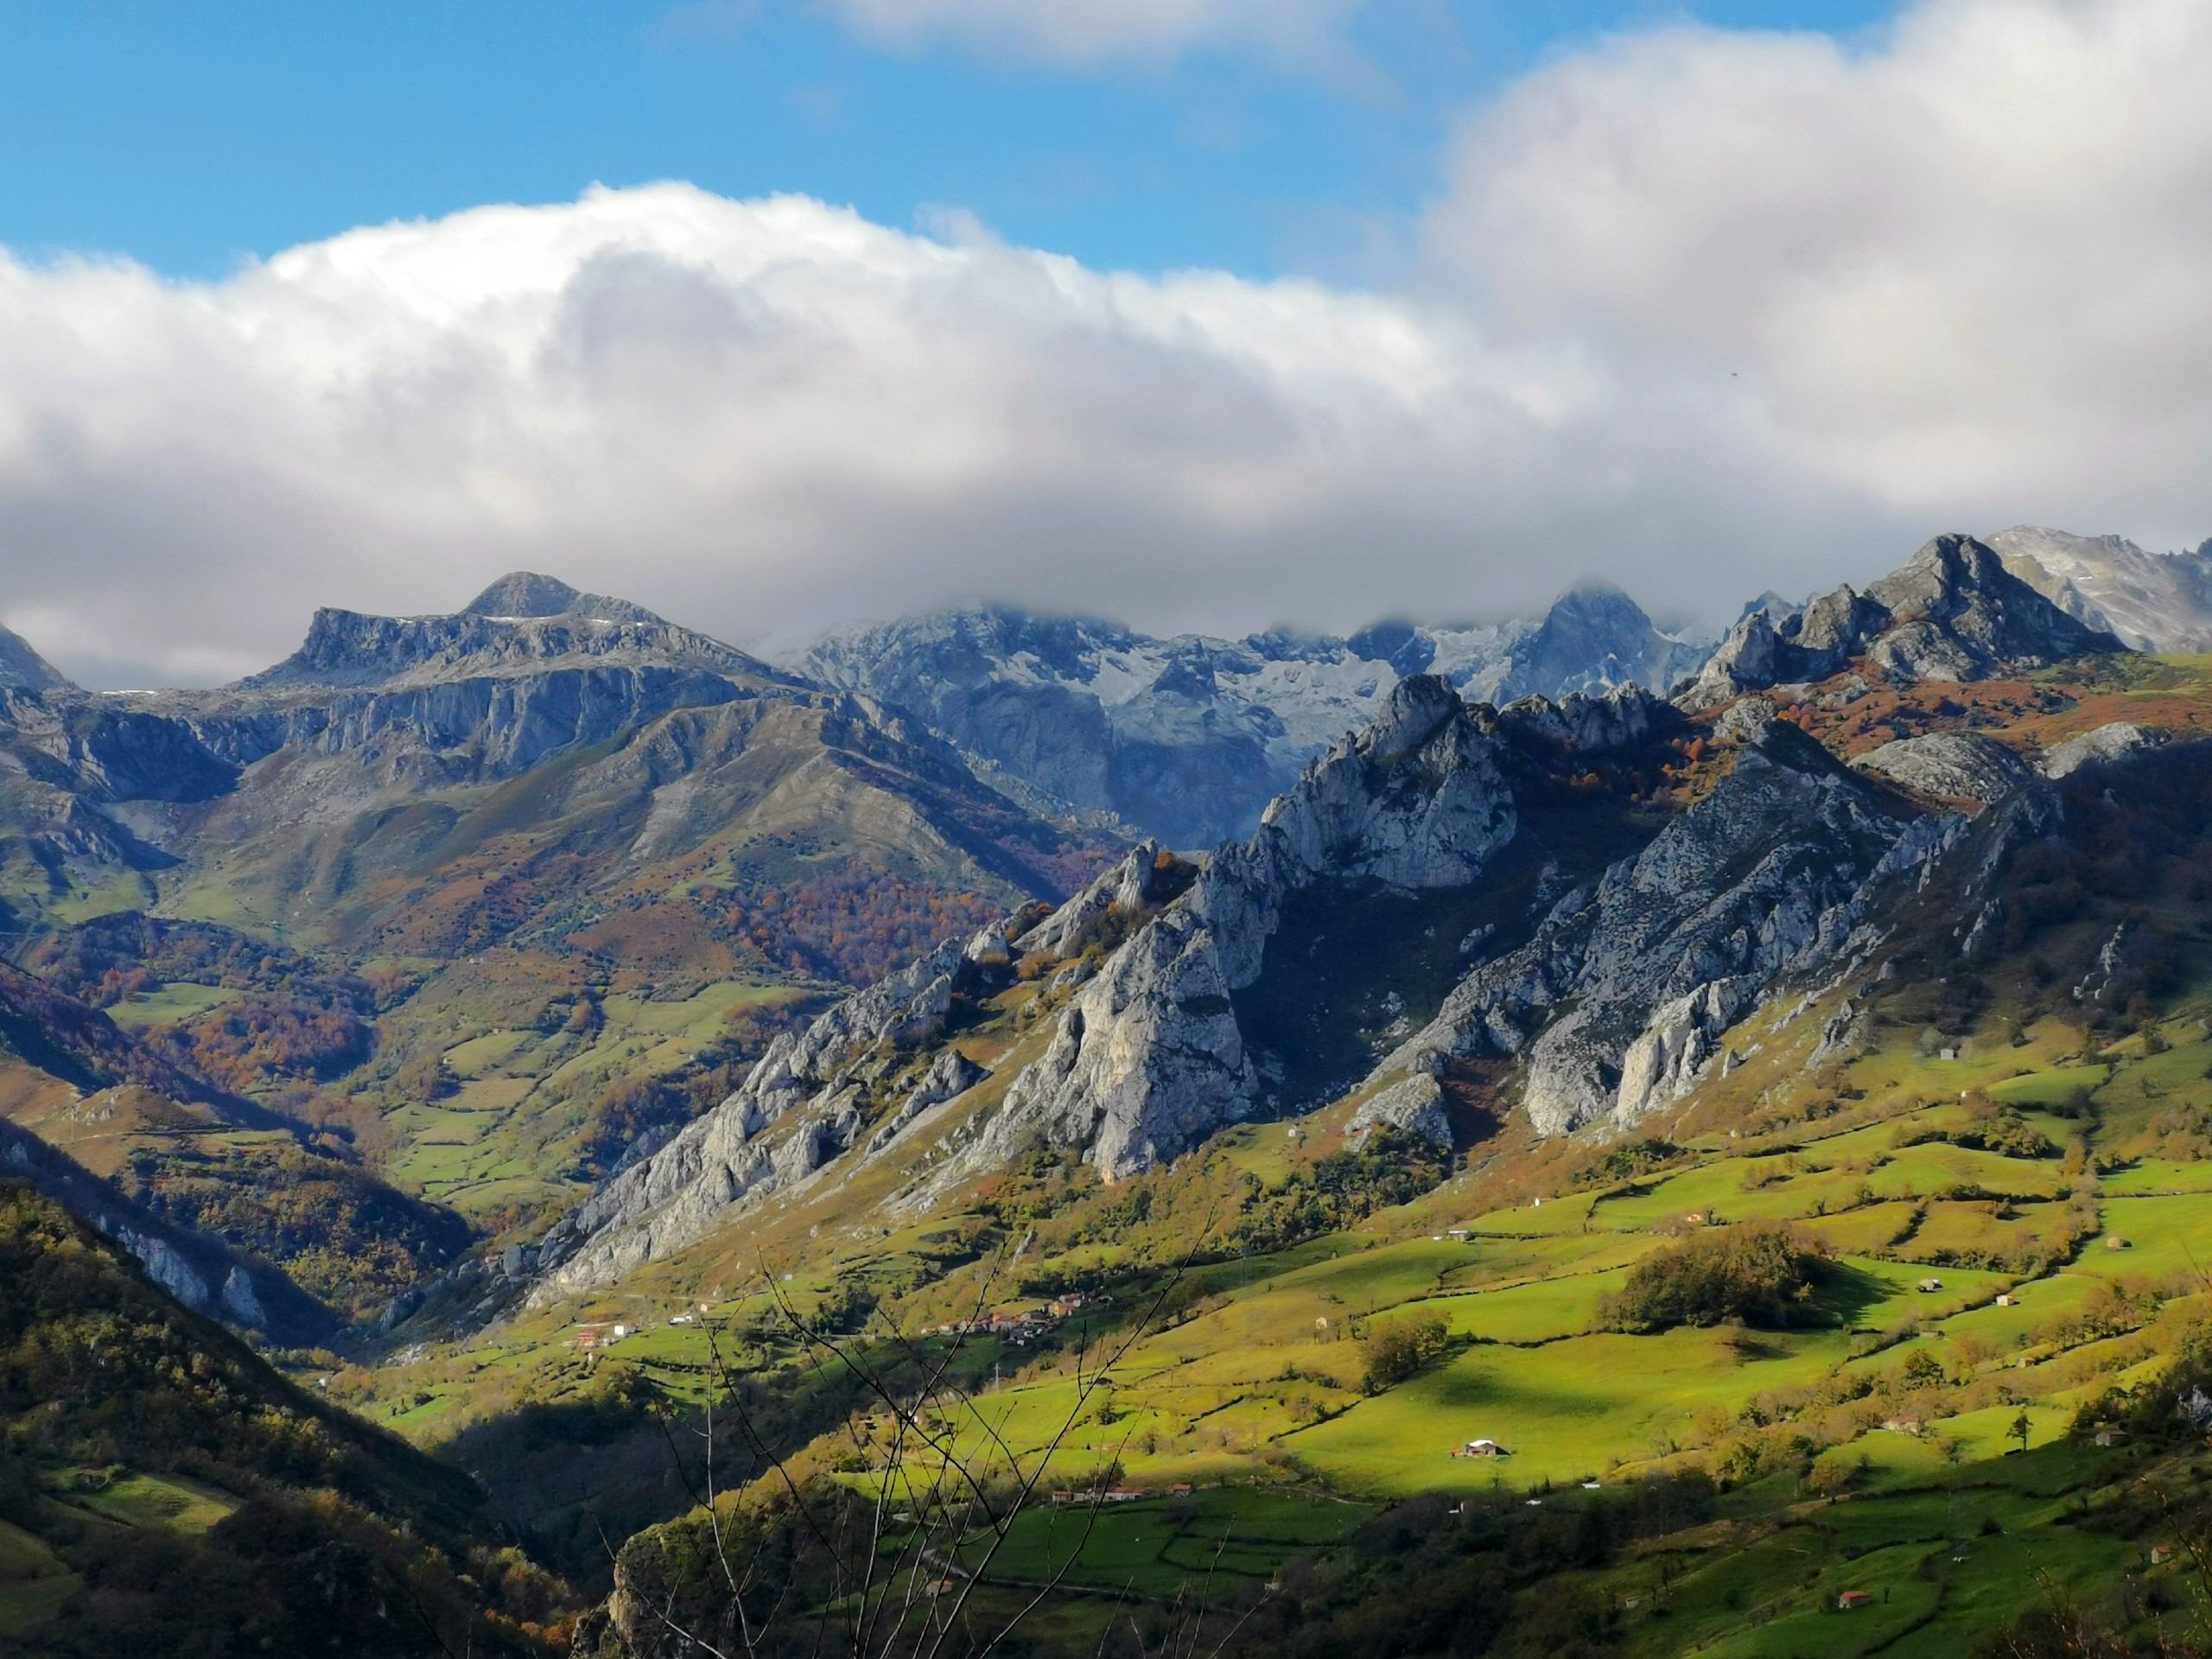 Looking at the green valley in Picos de Europa (Spain) while on family tour